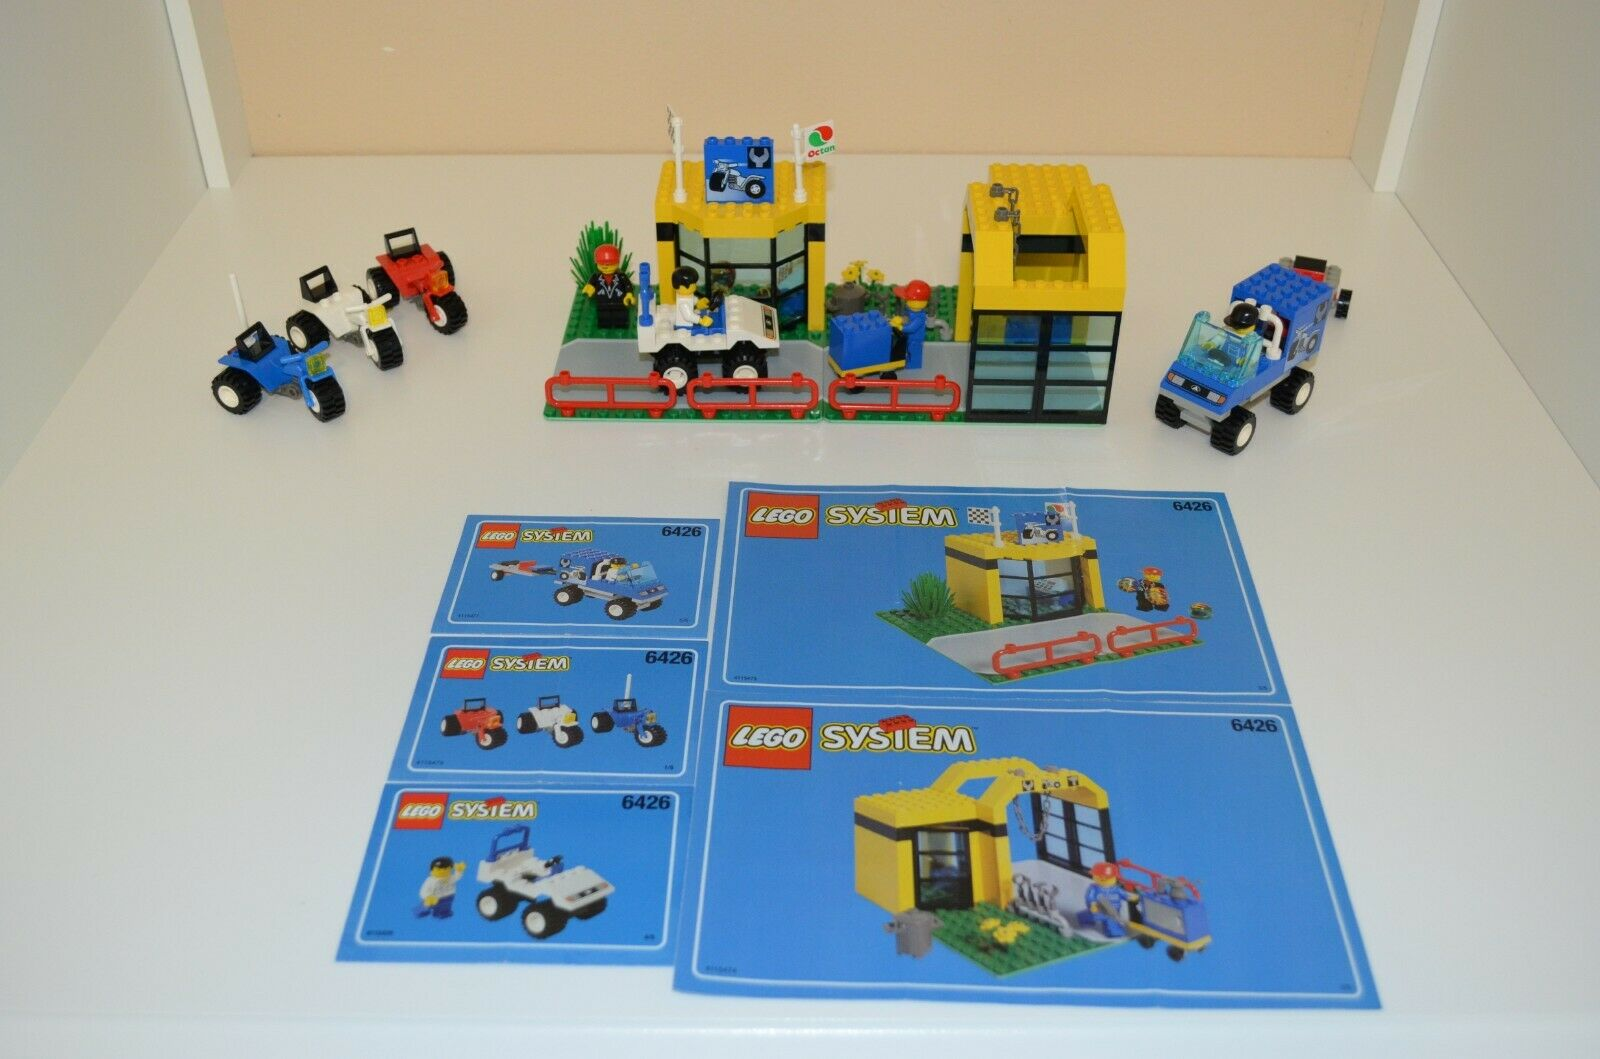 Lego Town Set Number 6426, Super Cycle Cycle Cycle Center, Produced in 1998 775b8f